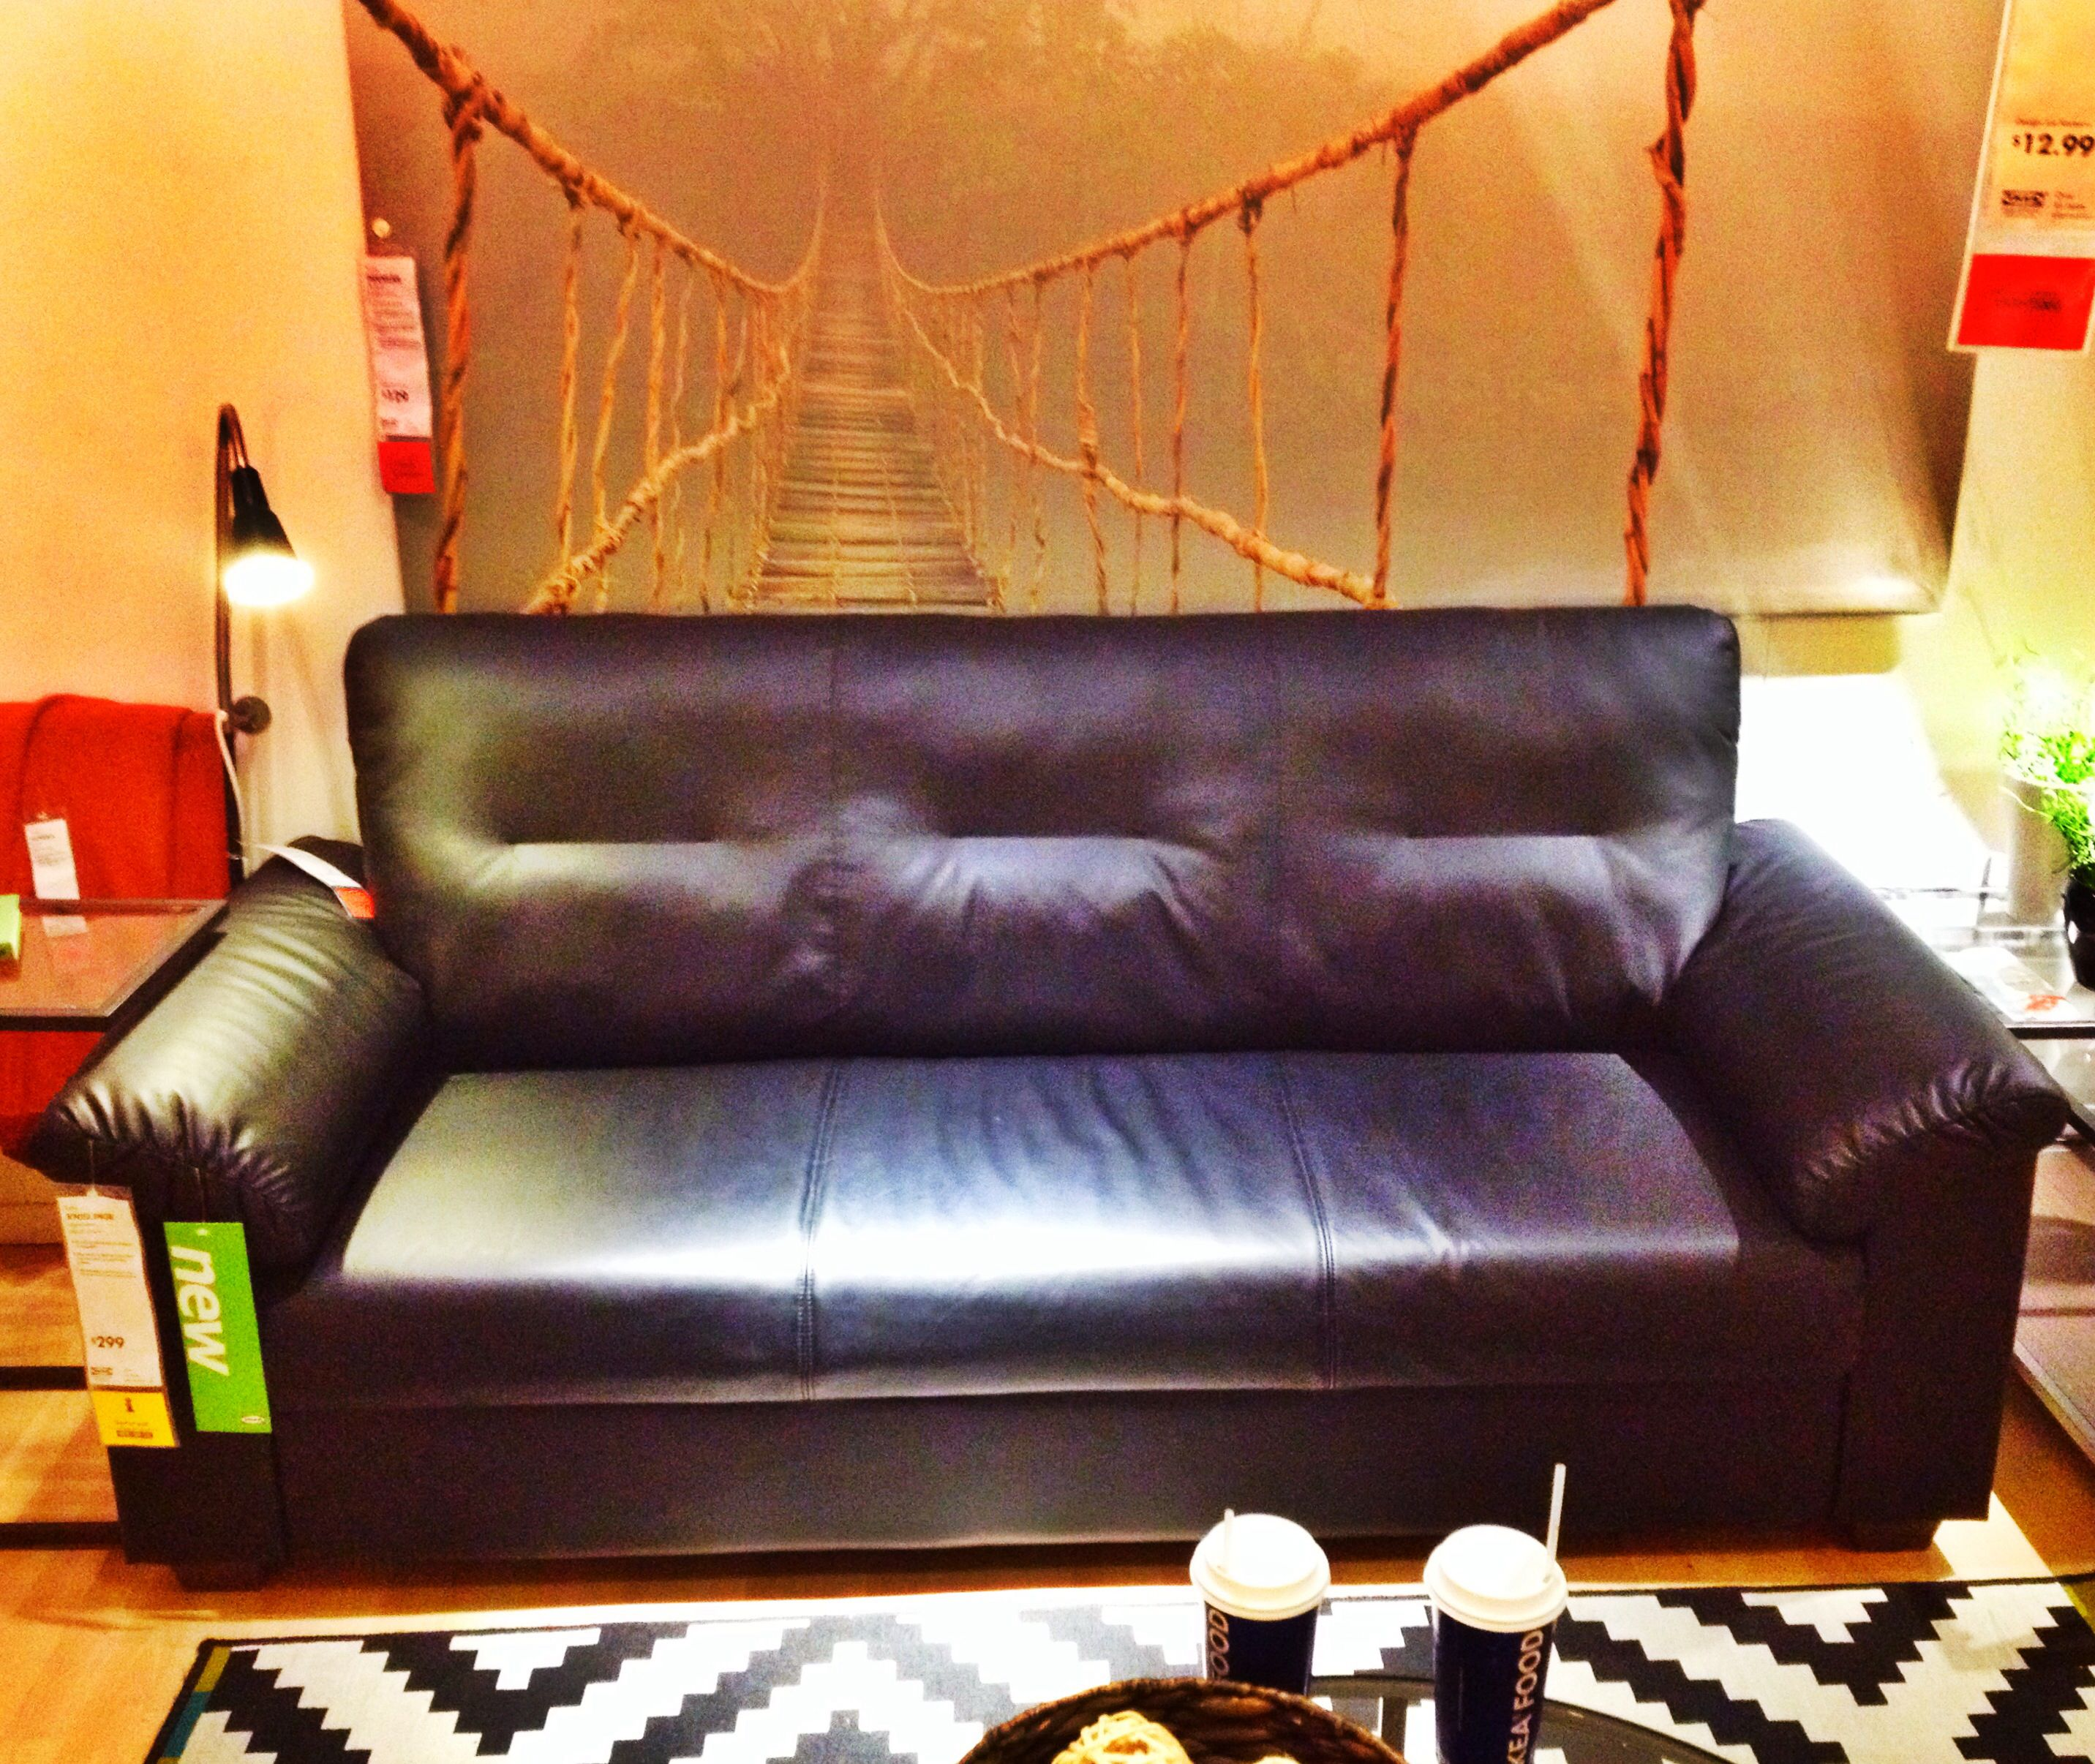 knislinge sofa assembly build a simple table ikea leather couch 299 00 interior and exterior